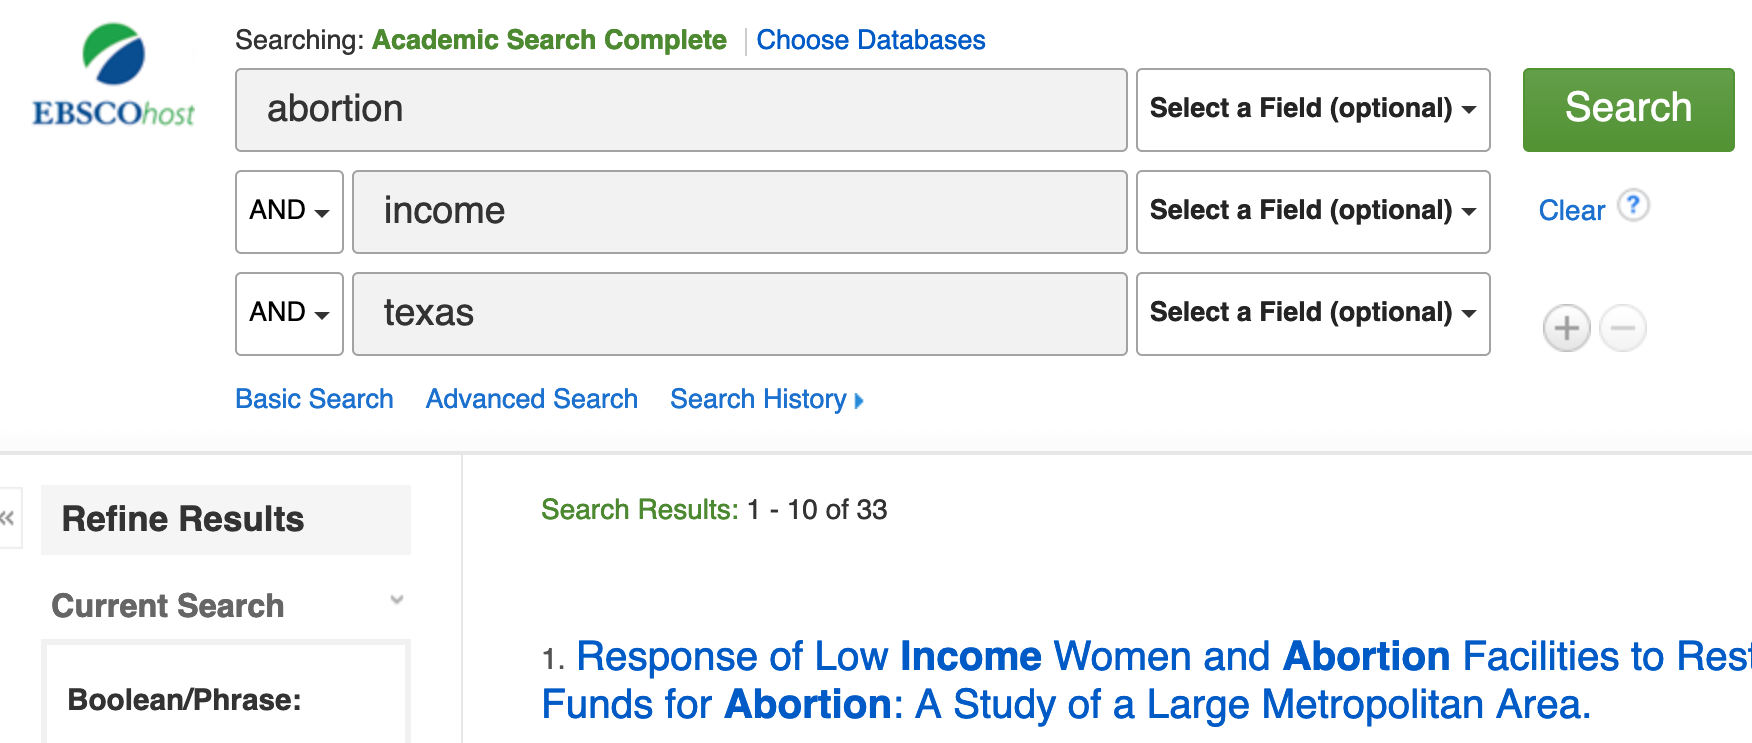 abortion and income and texas in academic search complete